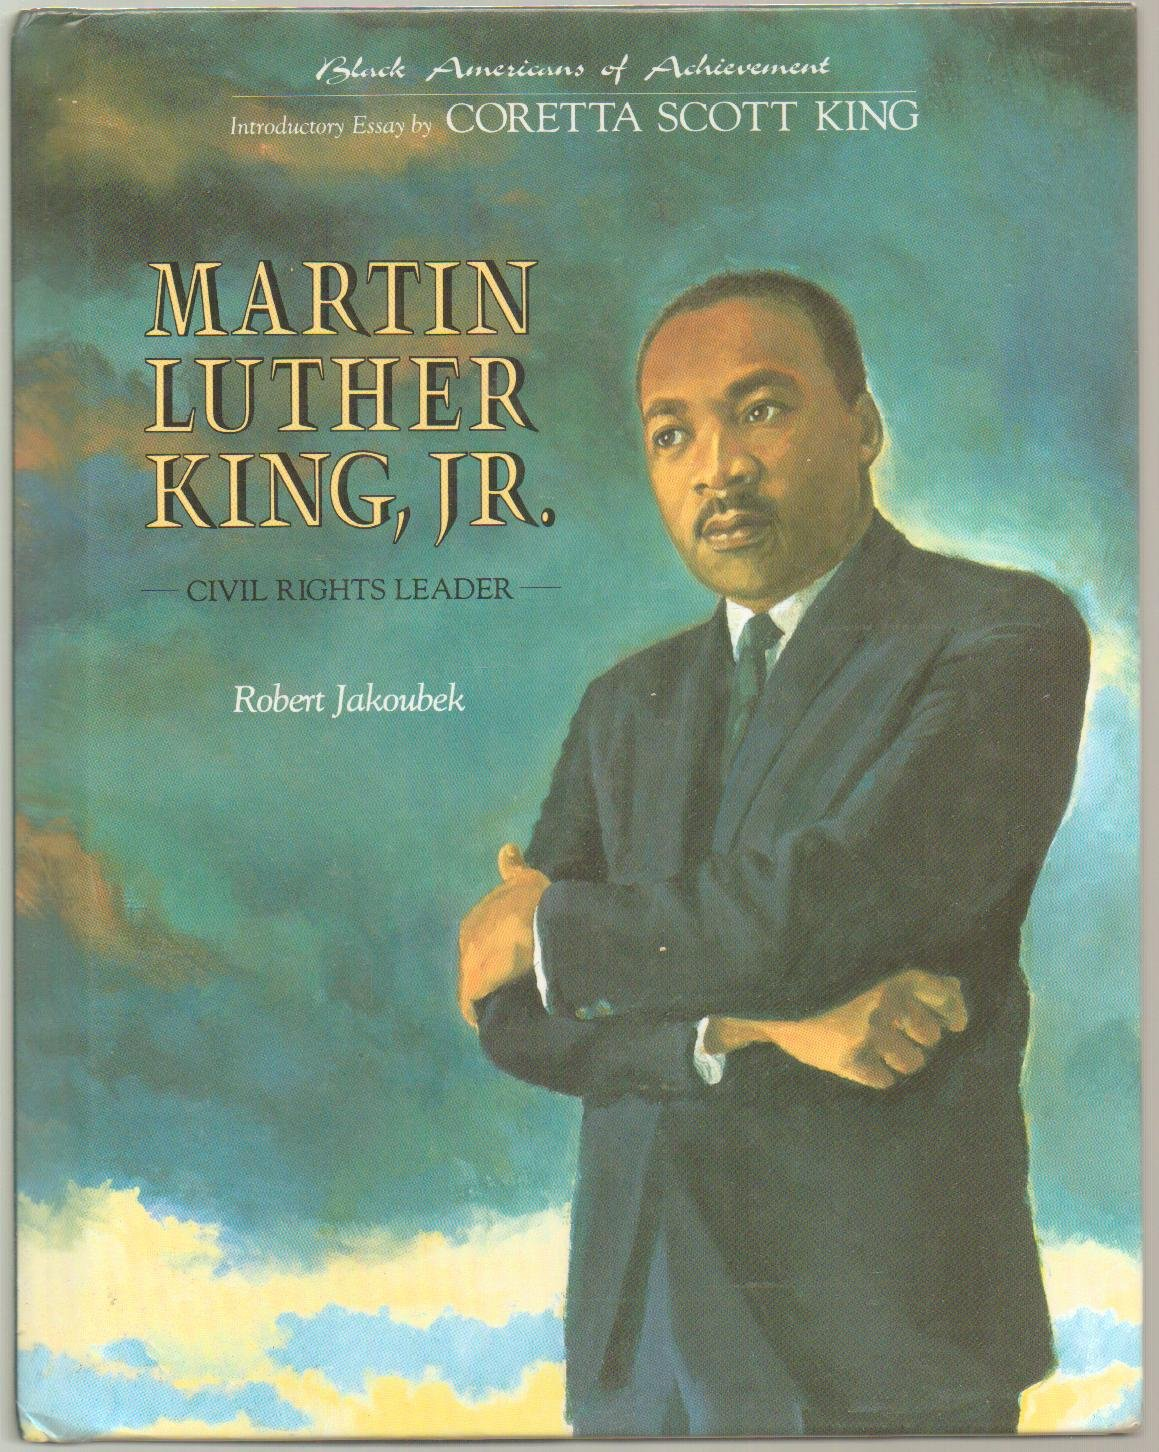 Locavore Synthesis Essay Martin Luther King Jr  Civil Rights Leader  Biography Black Americans  Of Achievement  Published For Scholastic By Chelsea House Publishers  Science Essay Topics also Sample Essay Topics For High School Martin Luther King Jr  Civil Rights Leader  Biography Black  Harvard Business School Essay